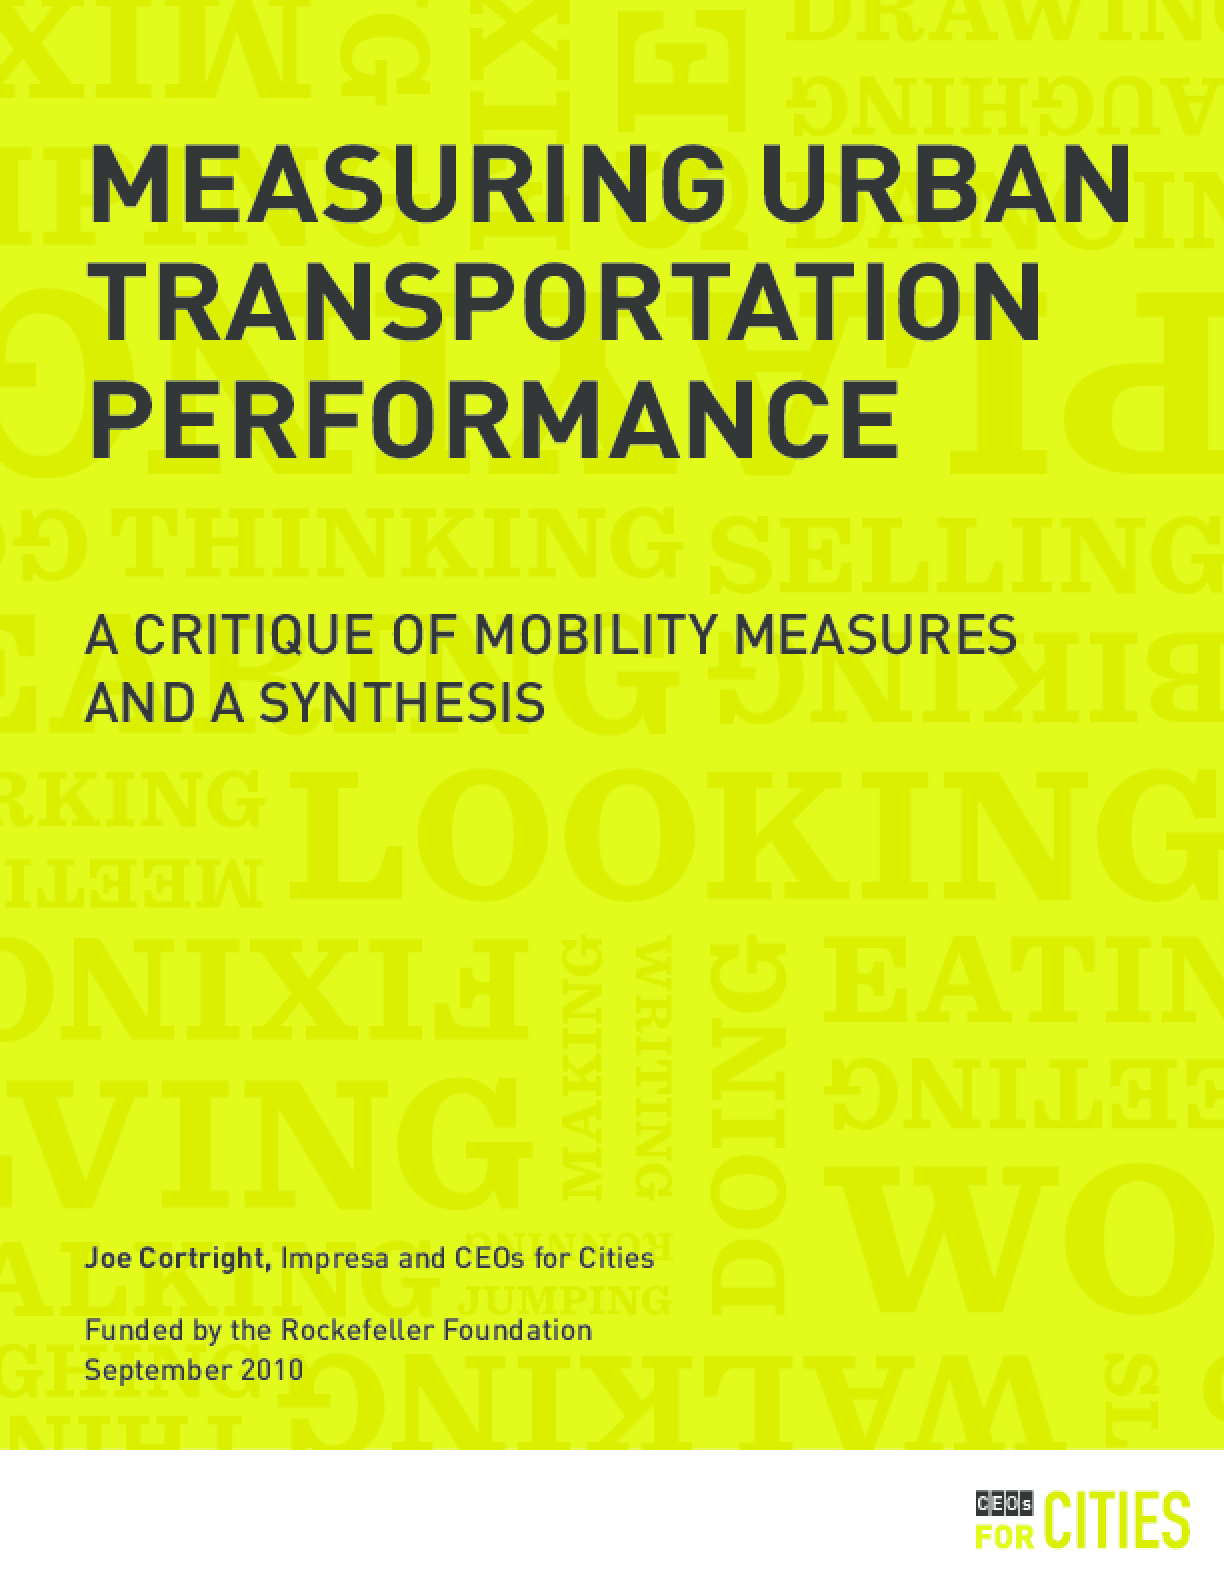 Measuring Urban Transportation Performance: A Critique of Mobility Measures and a Synthesis